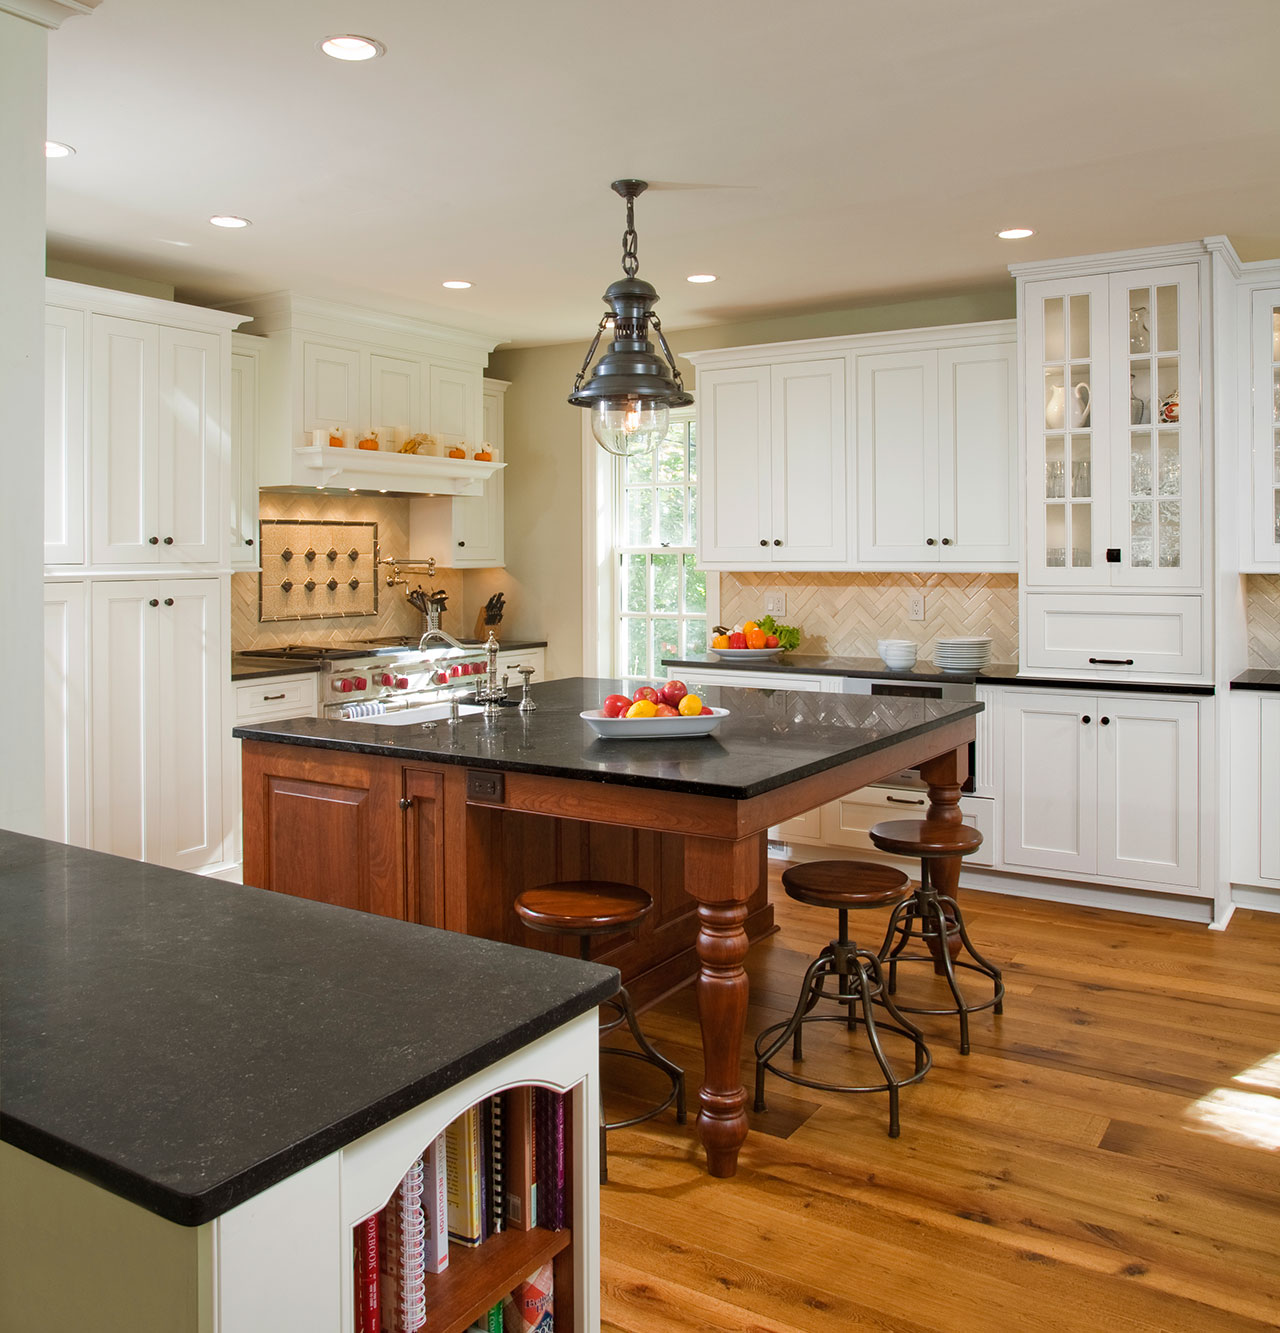 cool kitchen stuff 6 seat table period kitchens designs & renovation | htrenovations